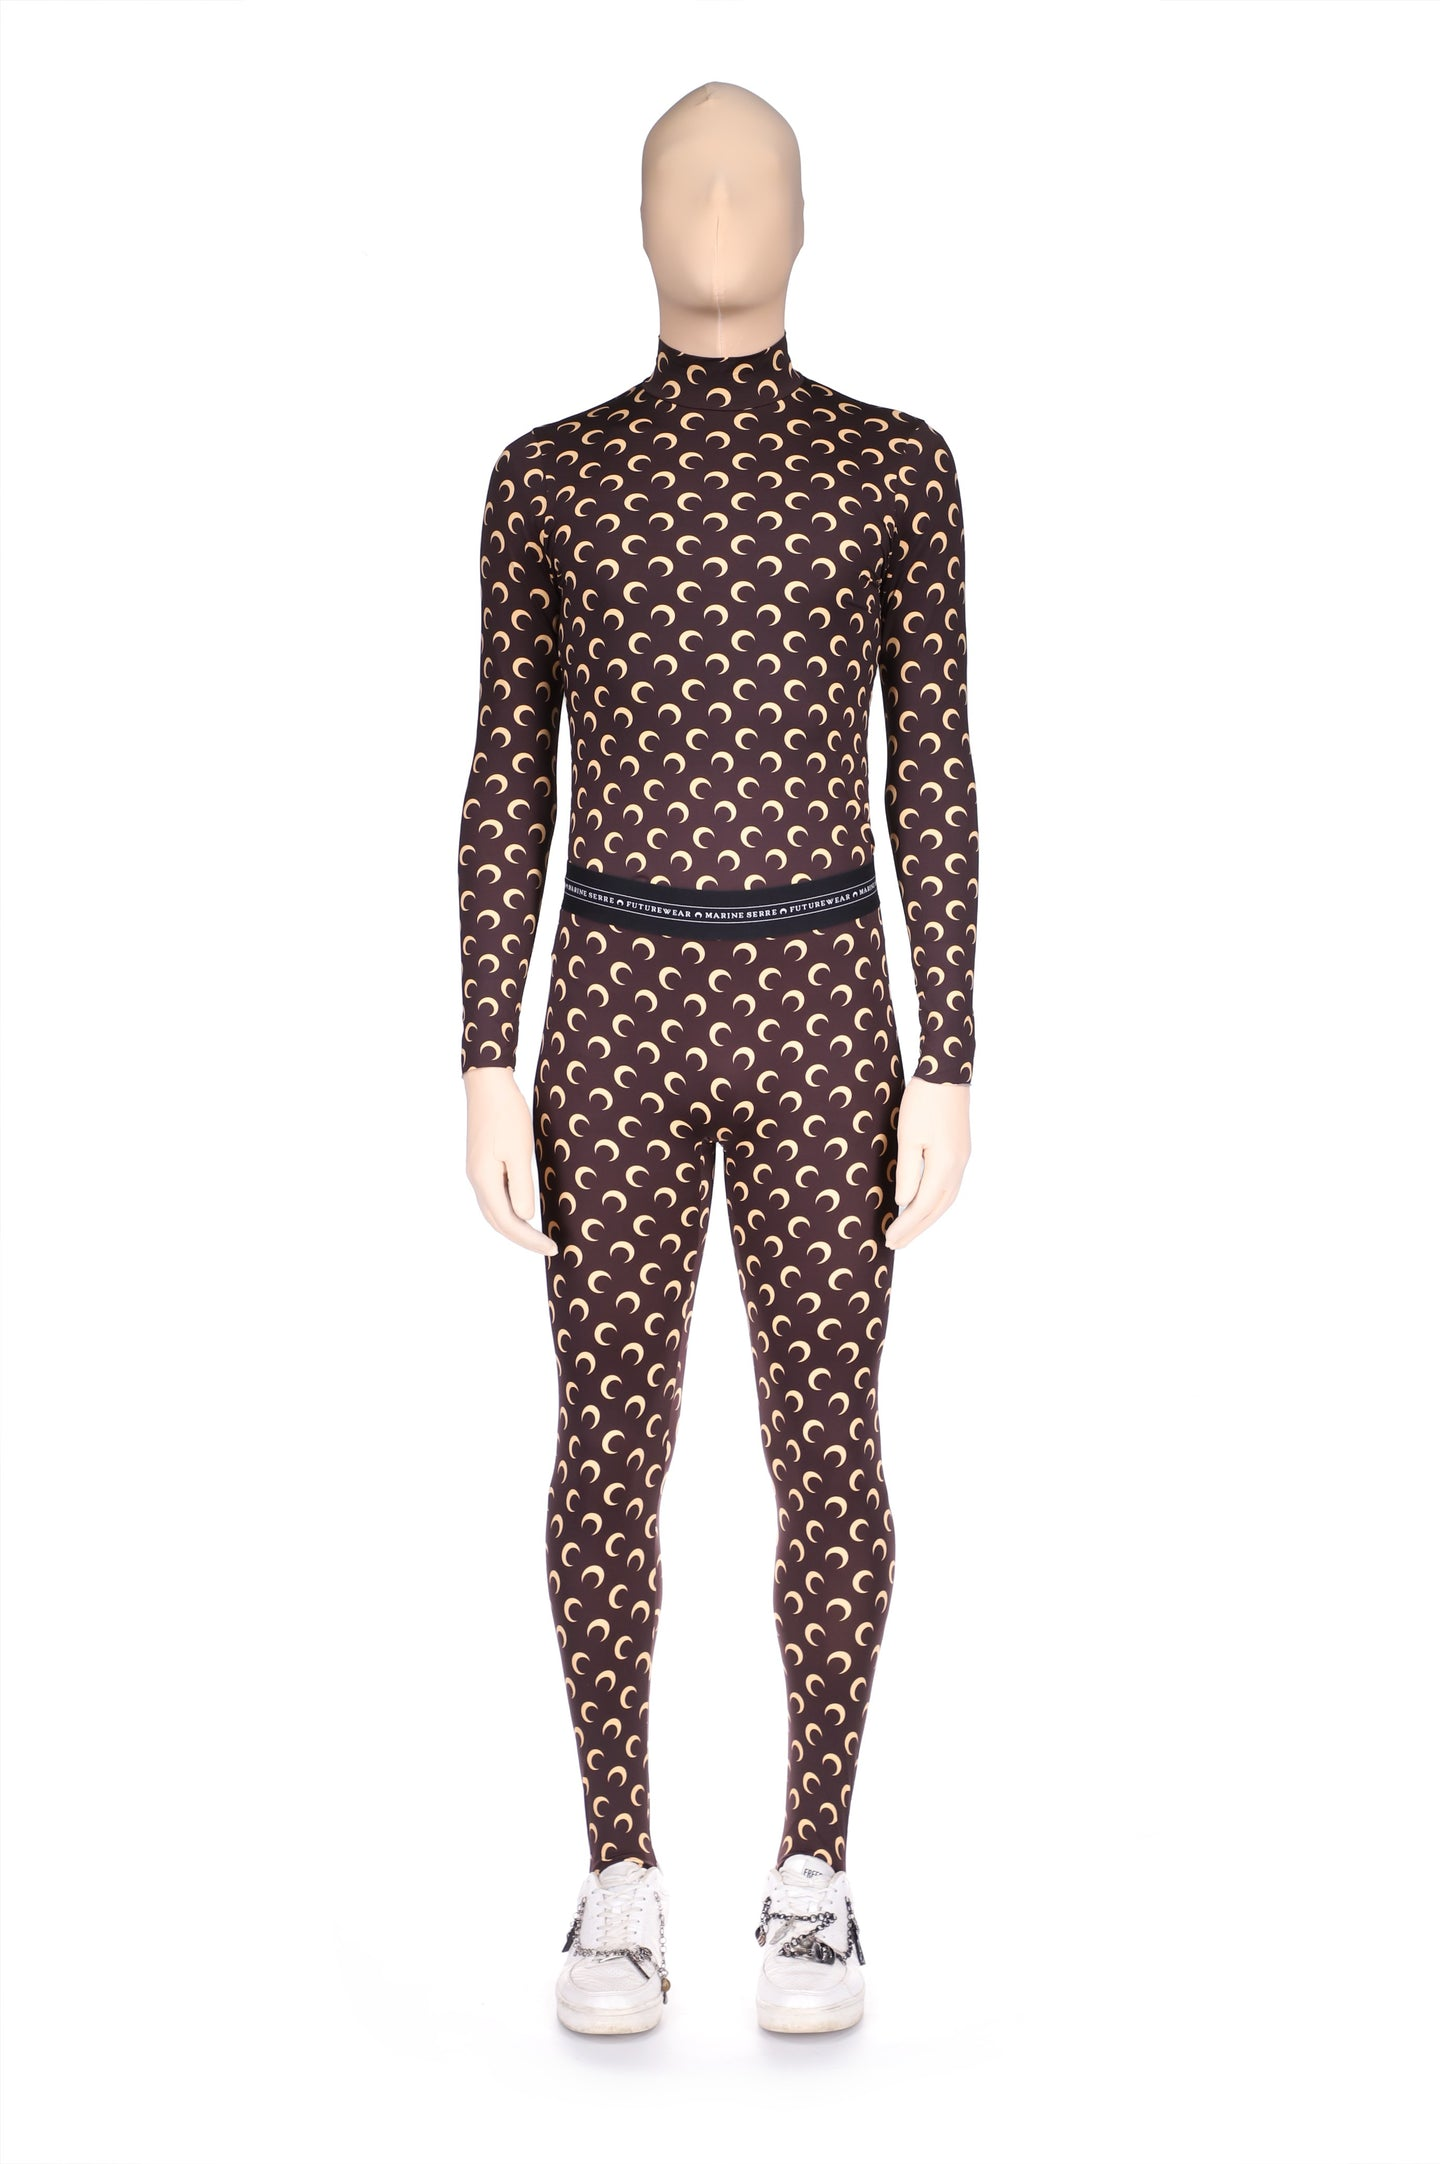 Fuseaux Moon Menswear Leggings